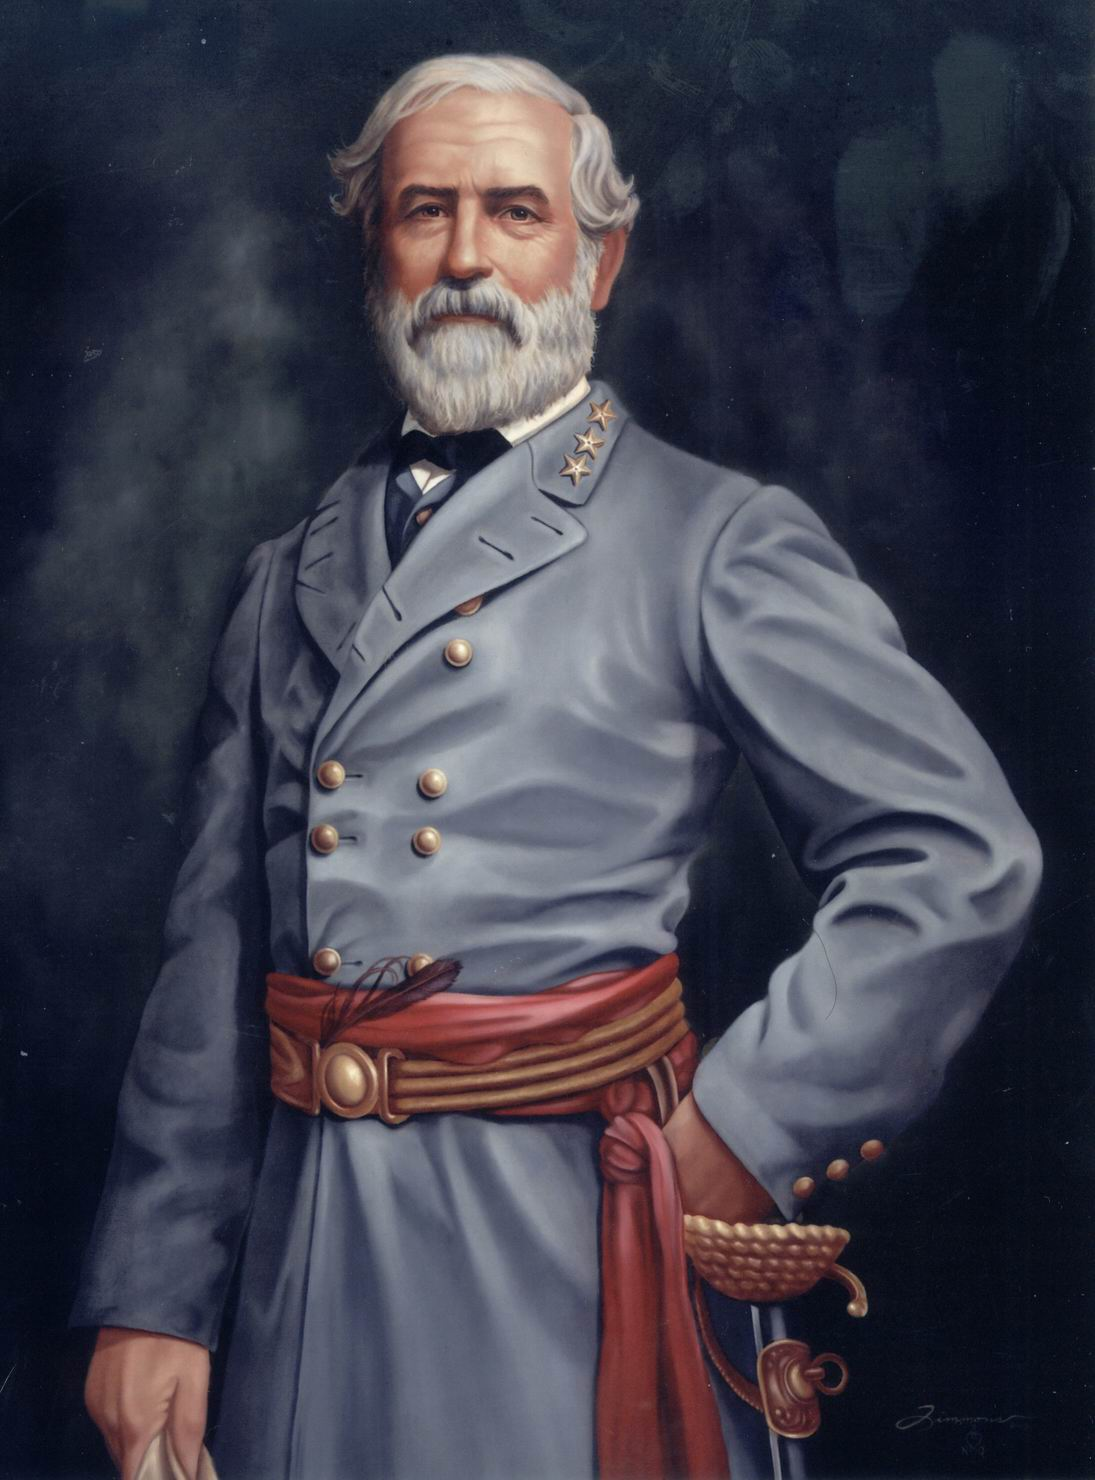 a biography of robert e lee an american soldier fighting for the confederate states of america Learn more about his roles in the a biography of robert e lee an american soldier fighting for the confederate states of america civil war and the great emancipation.